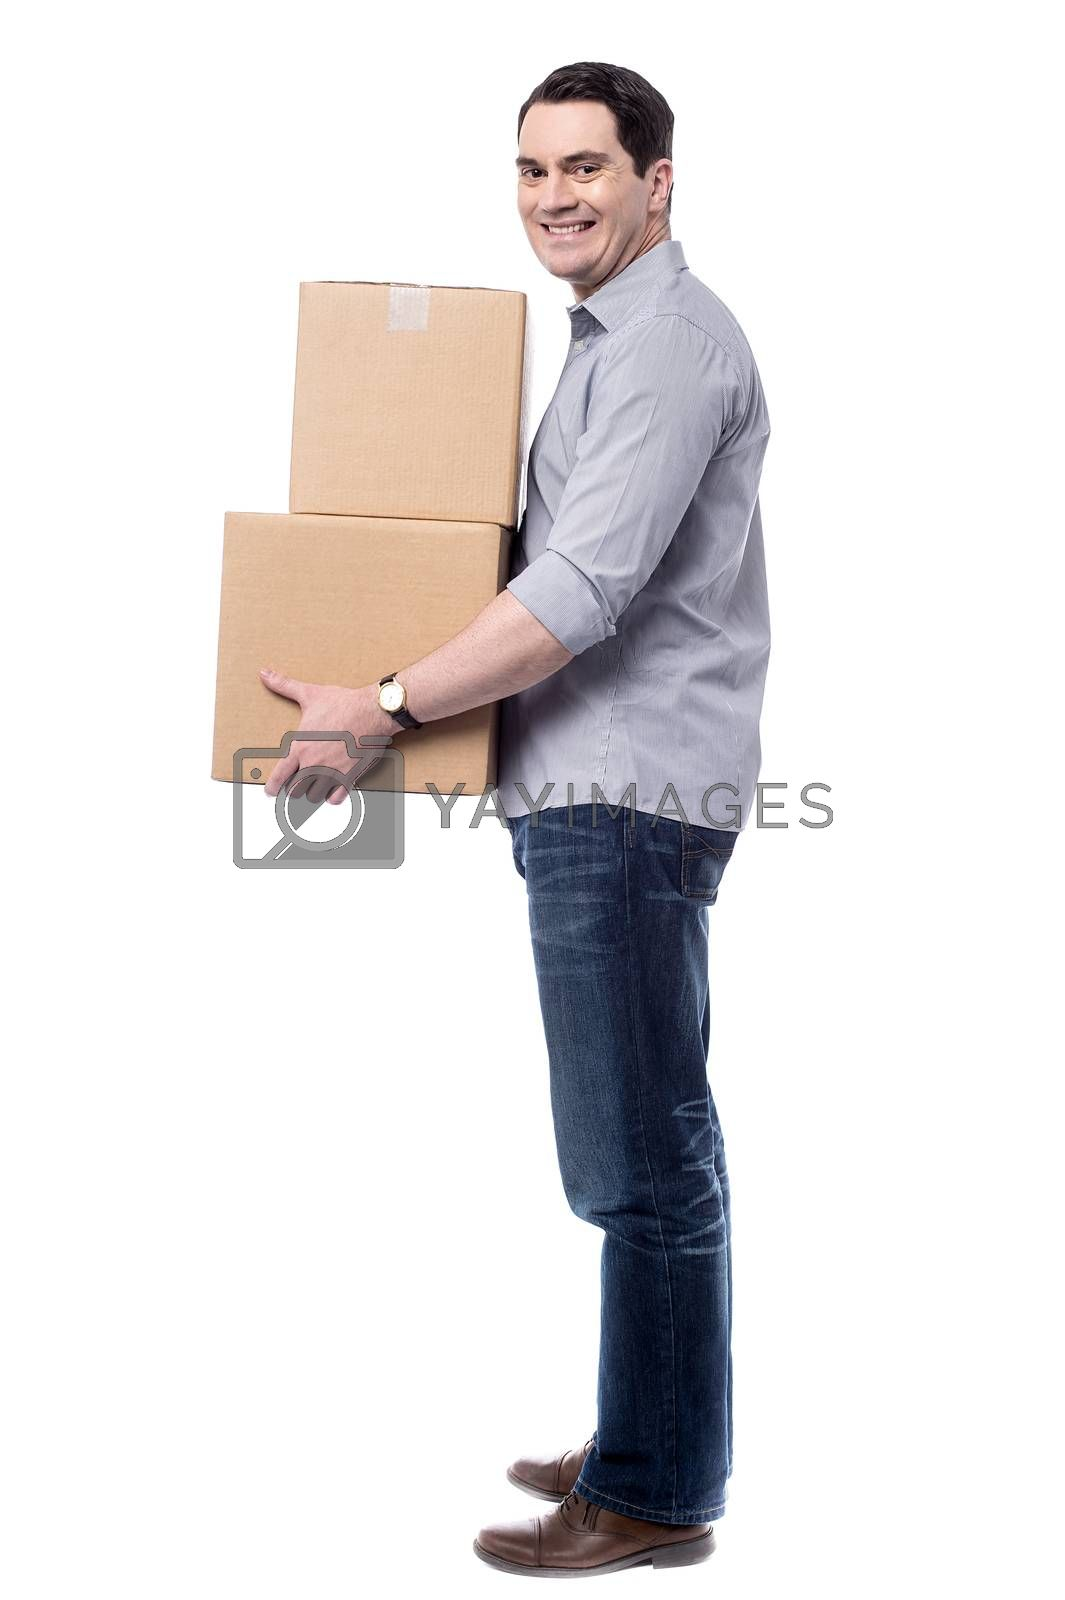 Sideways of casual man handling cardboard boxes